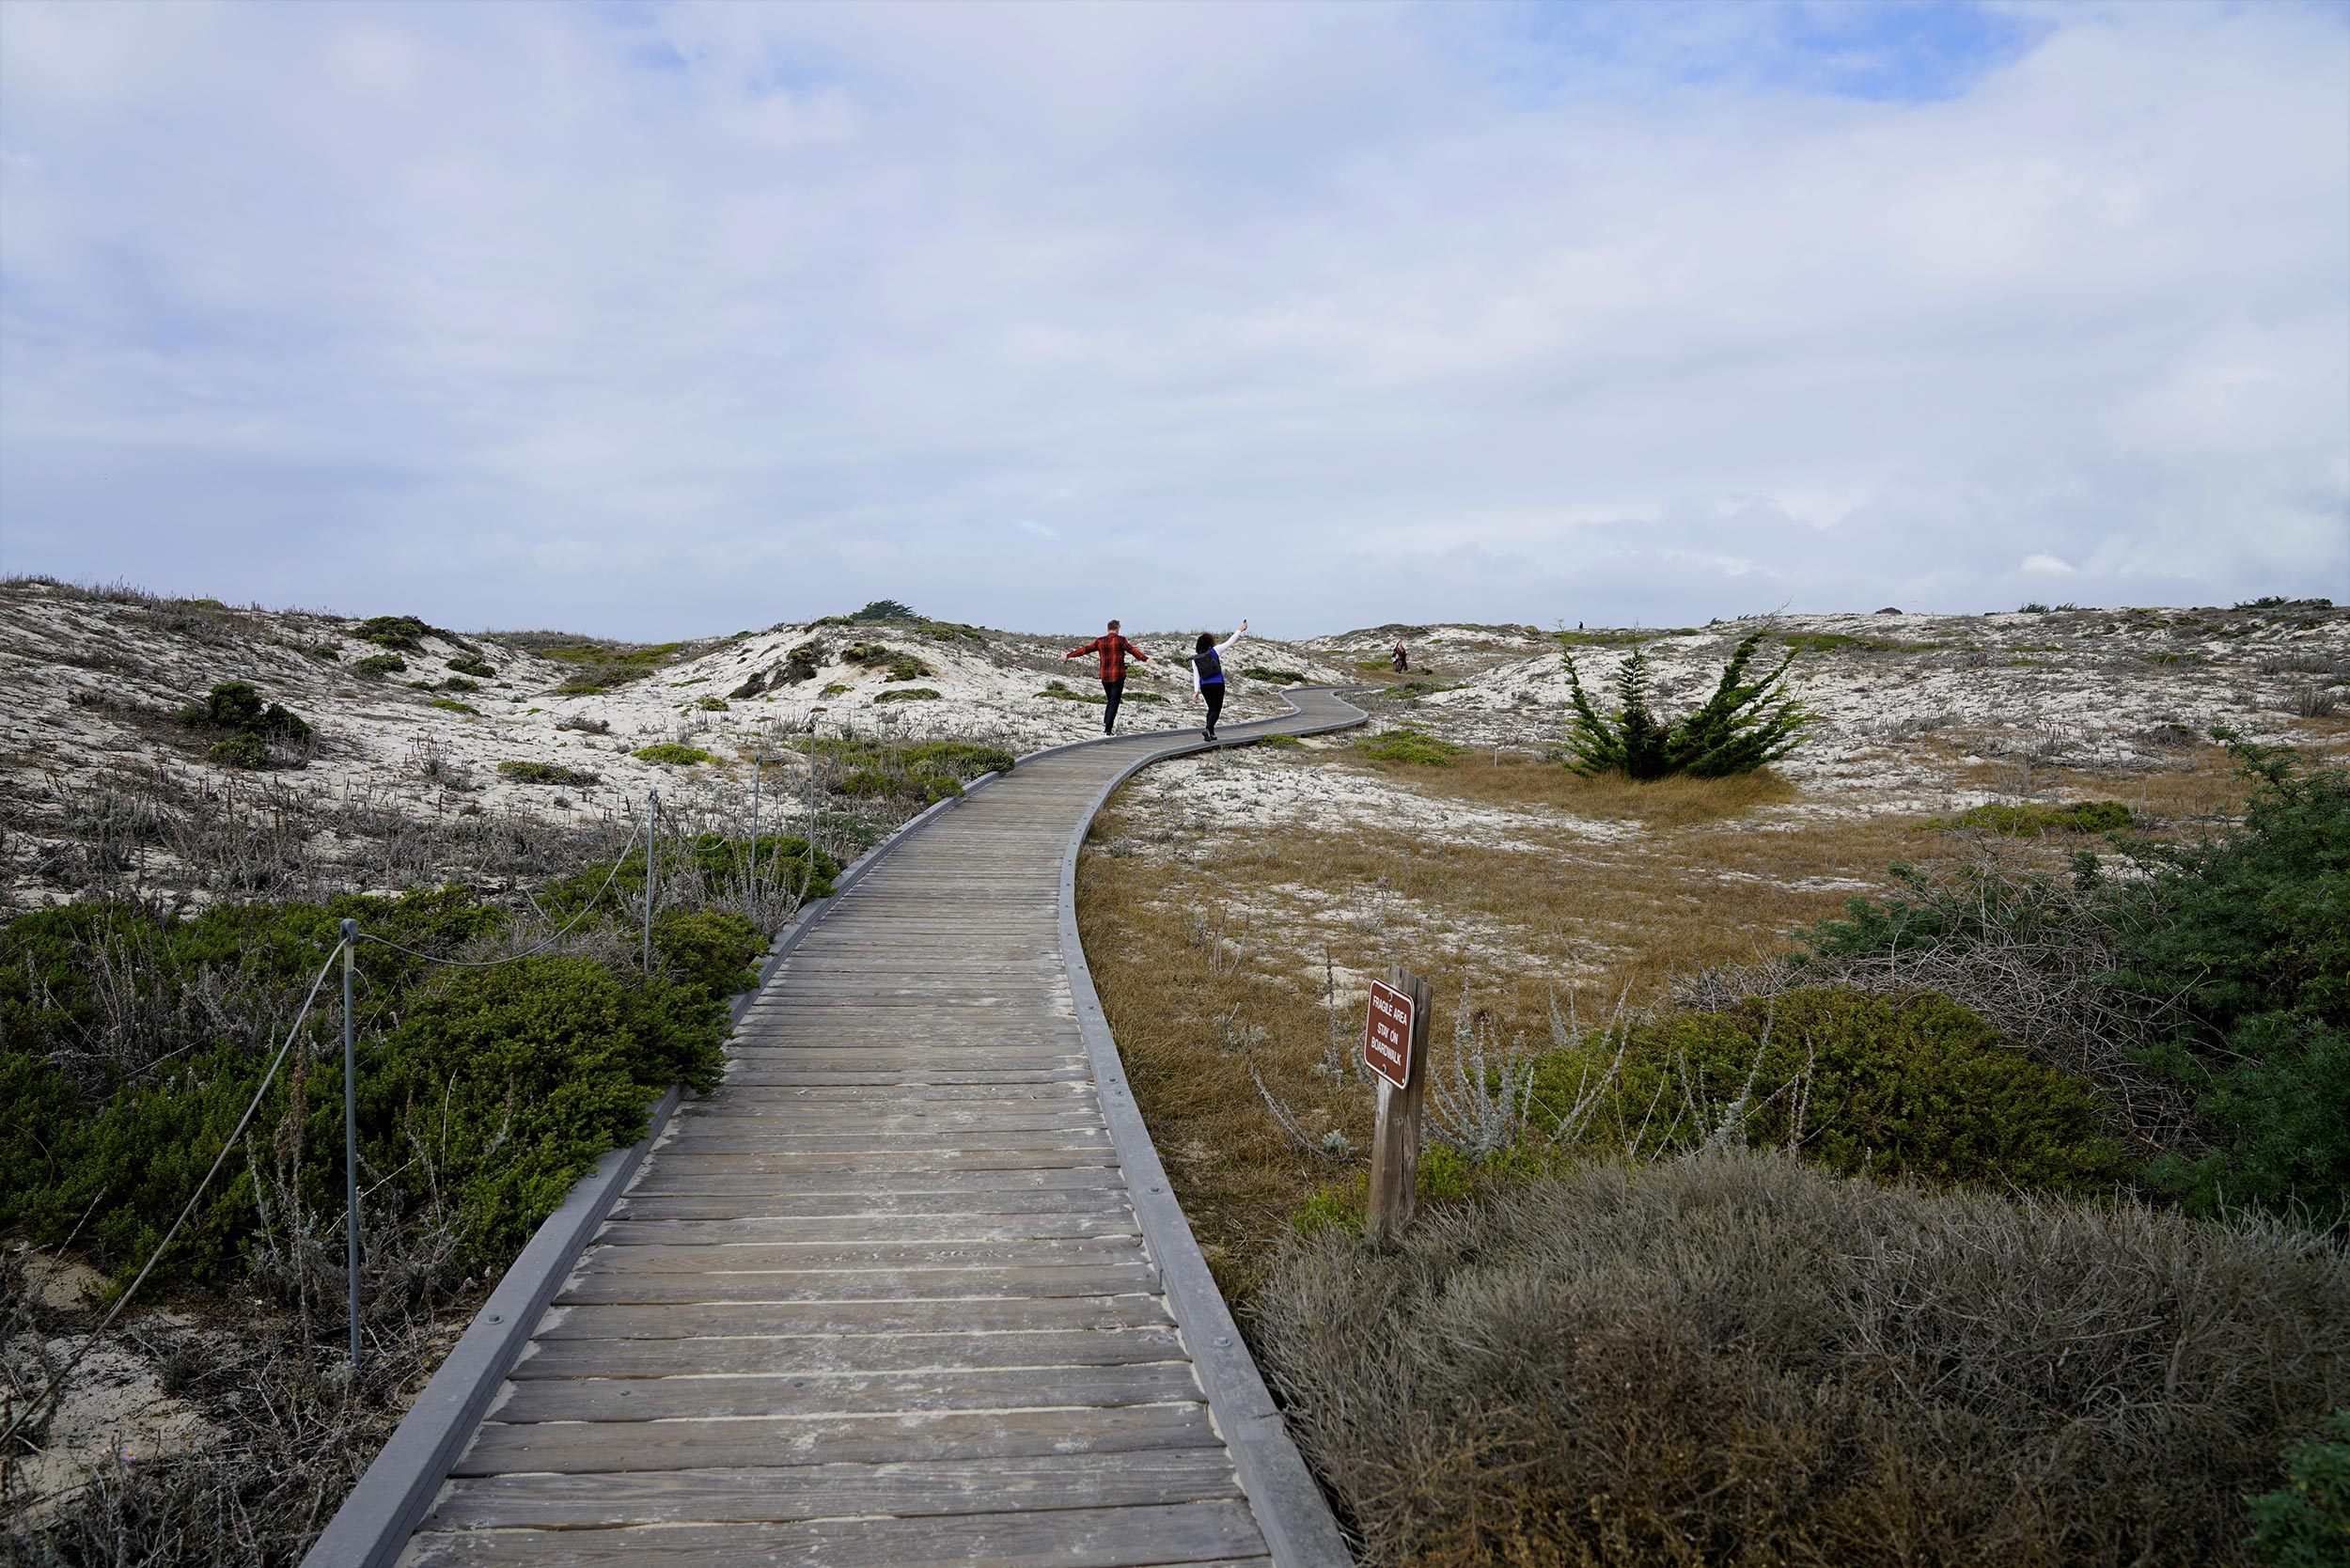 Walking down the boardwalk in Asilomar